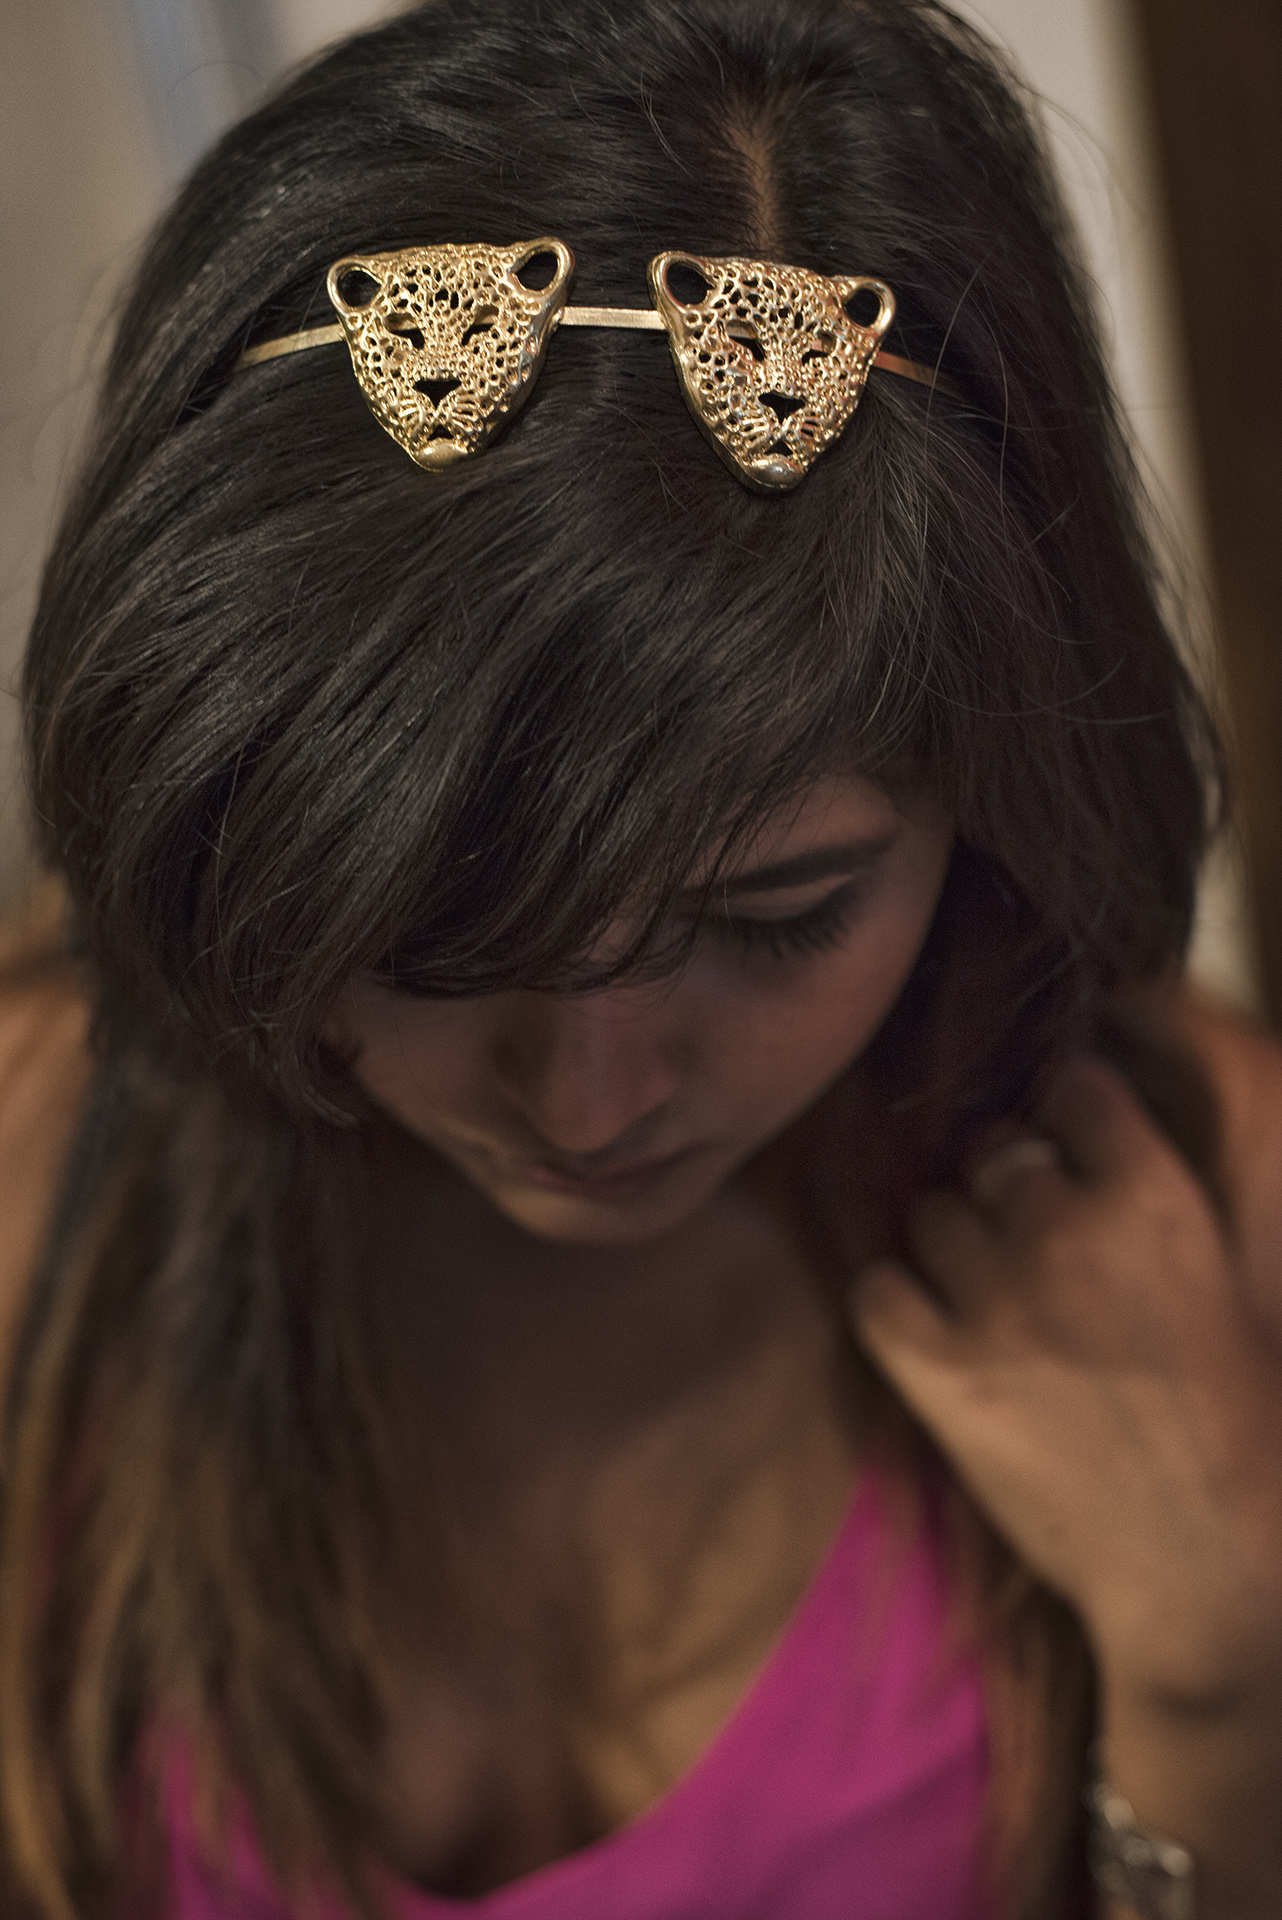 Ornamas Headband